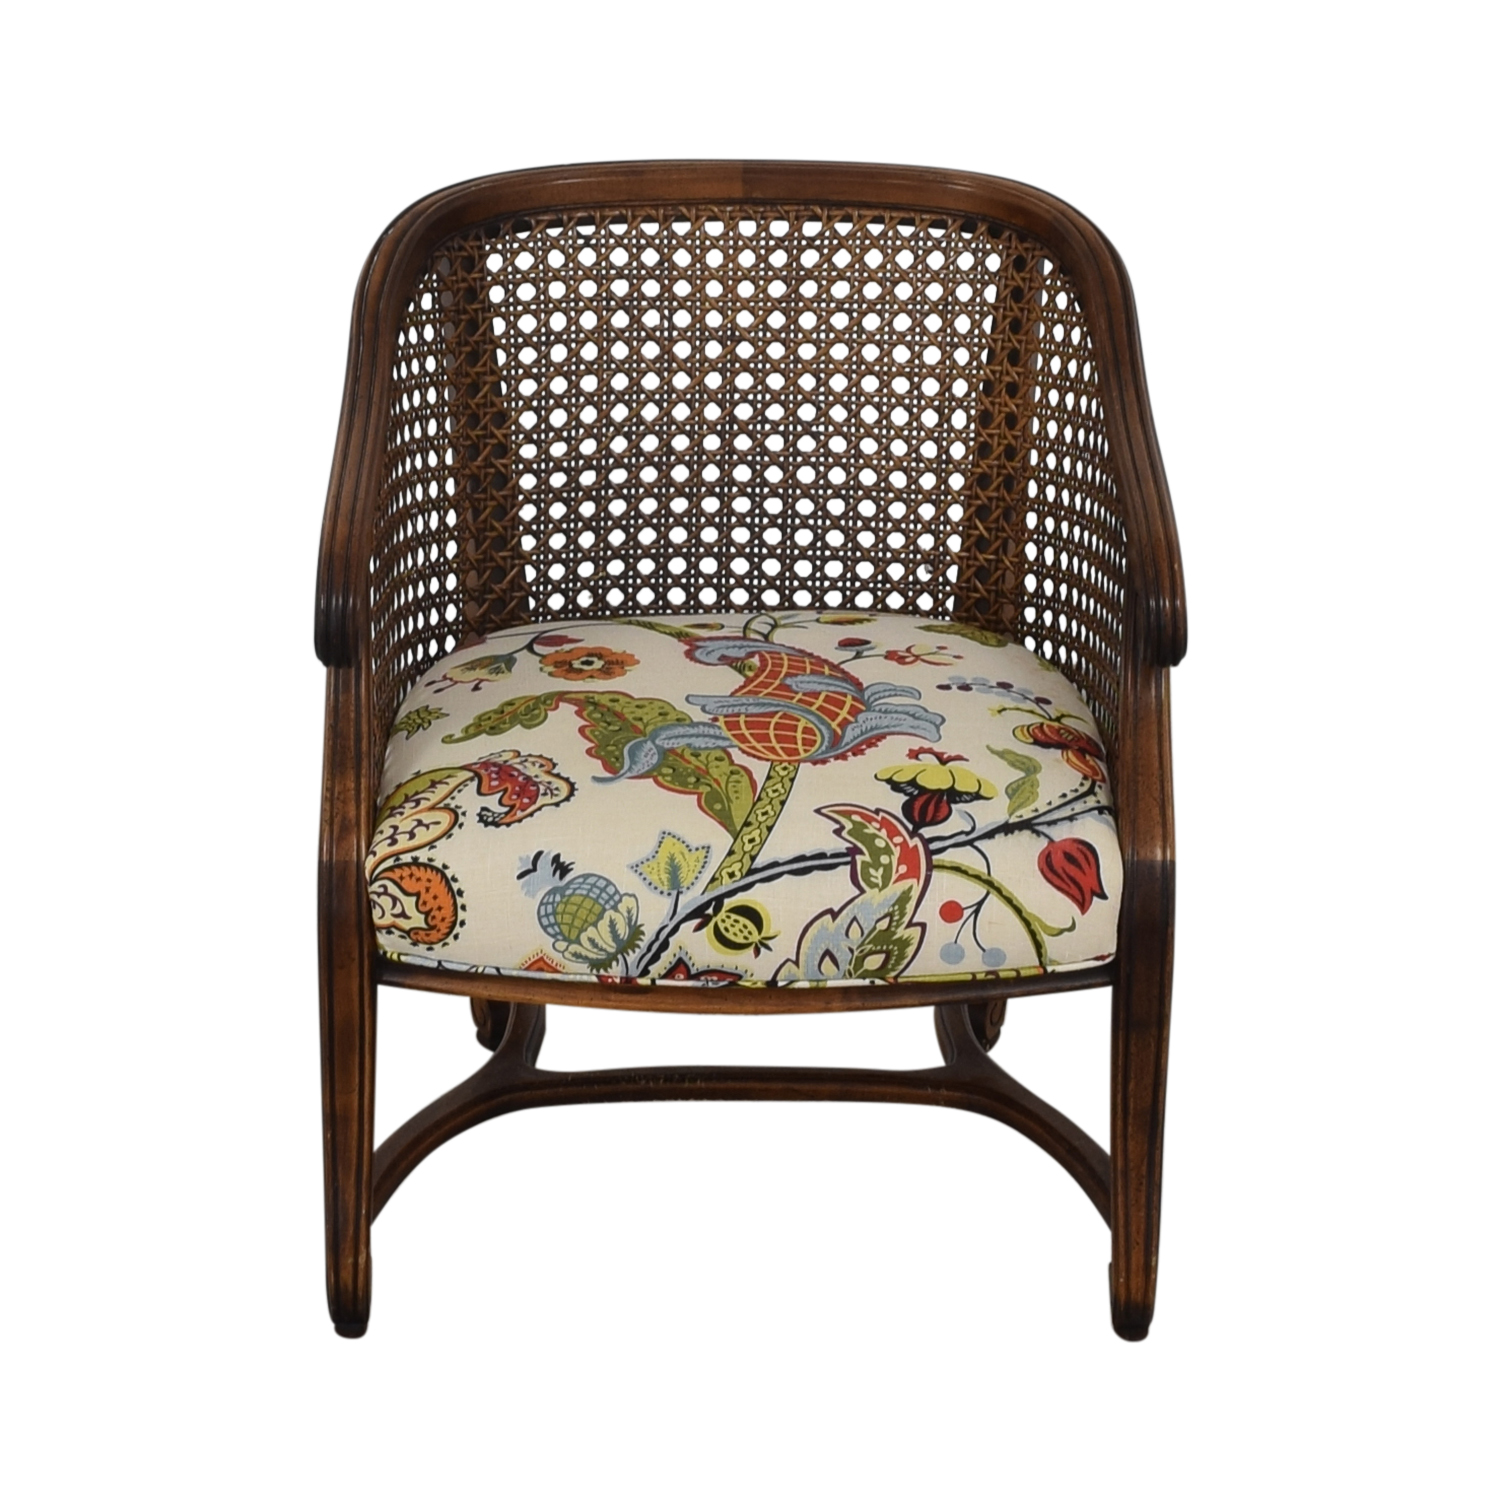 Heirloom Fruitwood Caned Armchair second hand